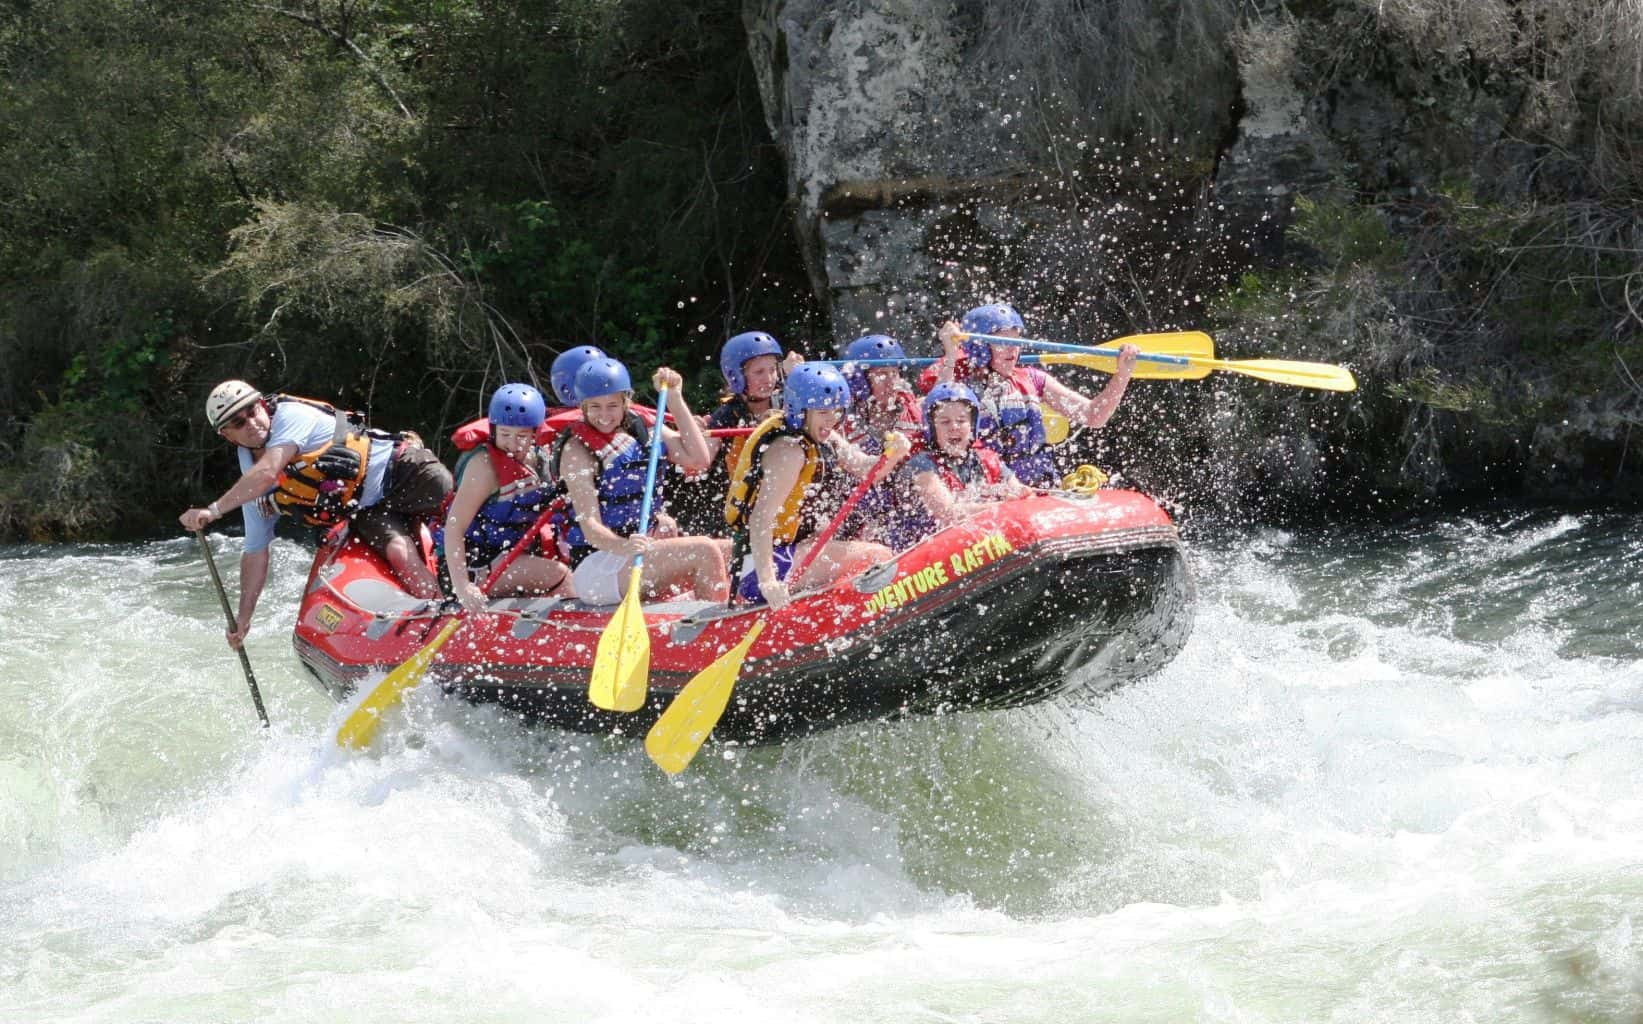 Whitewater rafting in the Summer time on the Lower Mitta River